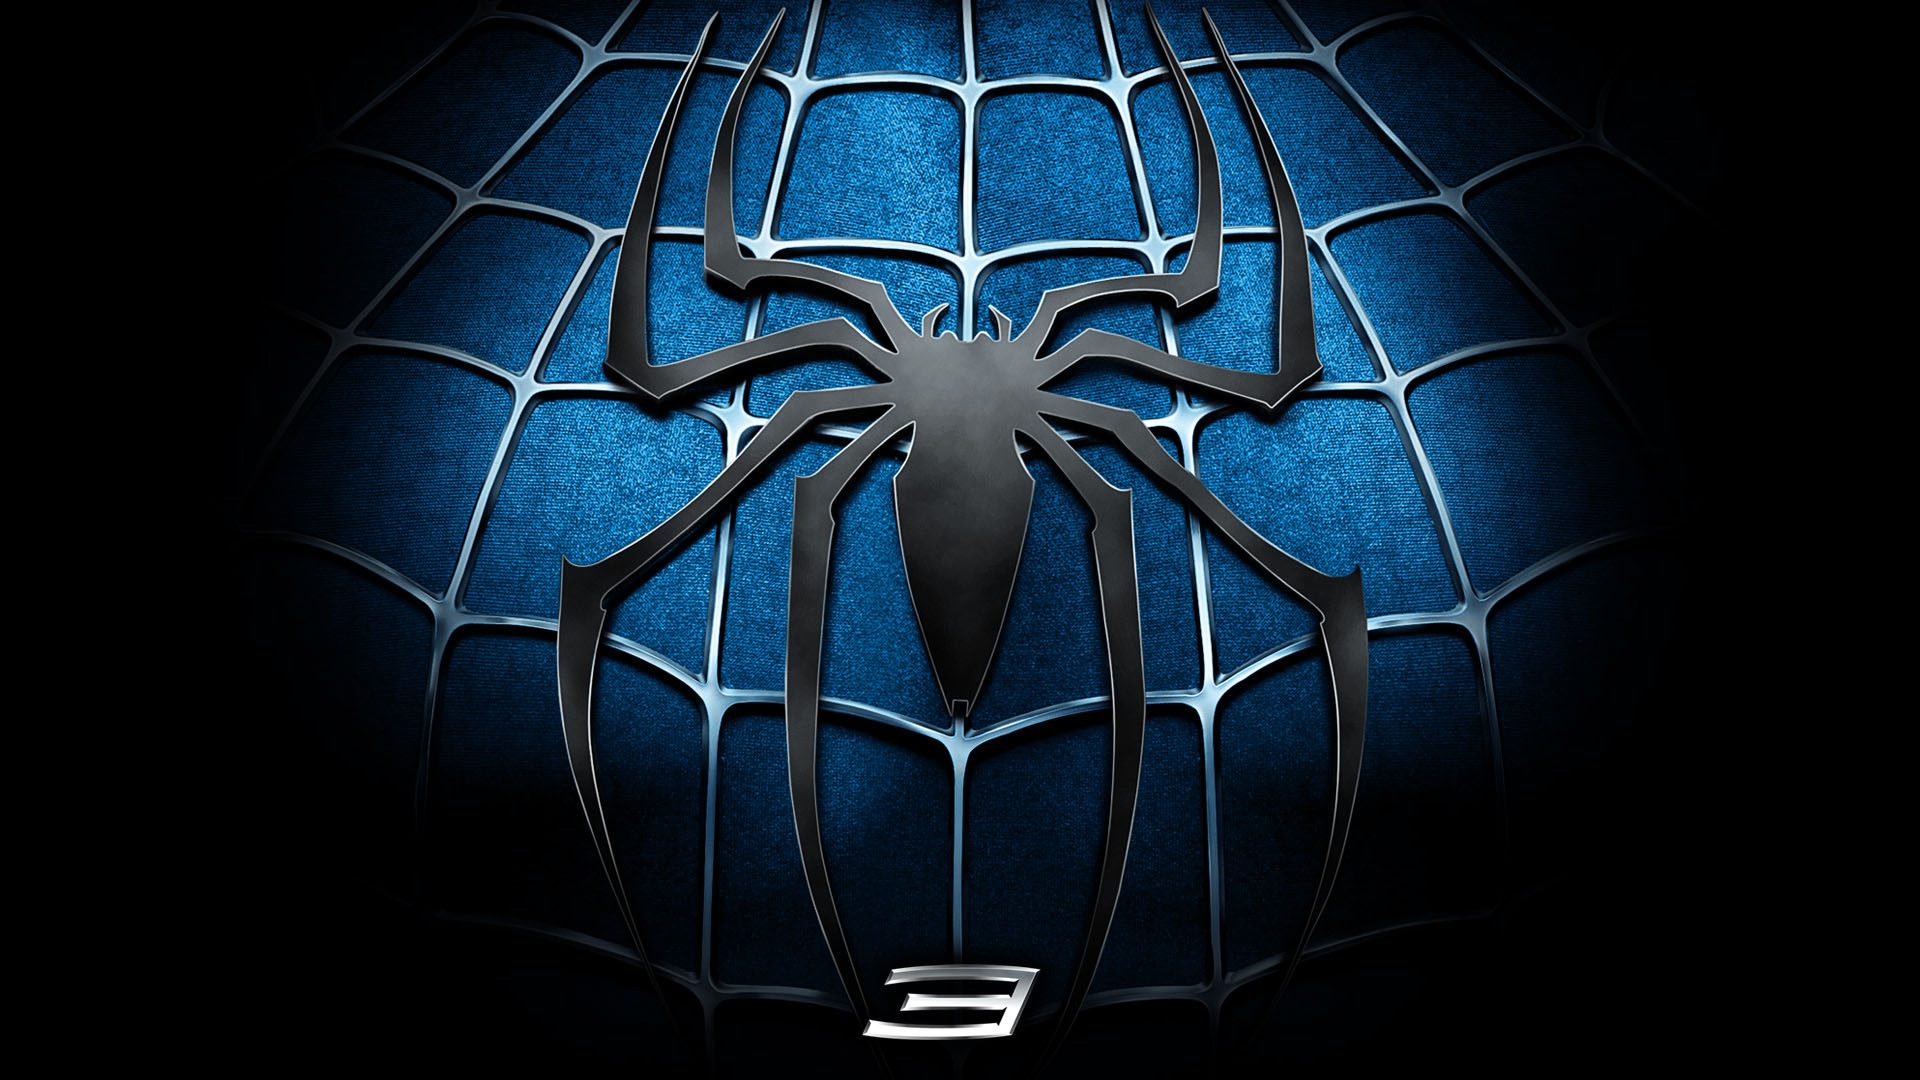 Wallpaper spiderman hd gratuit t l charger sur ngn mag - Image spiderman ...